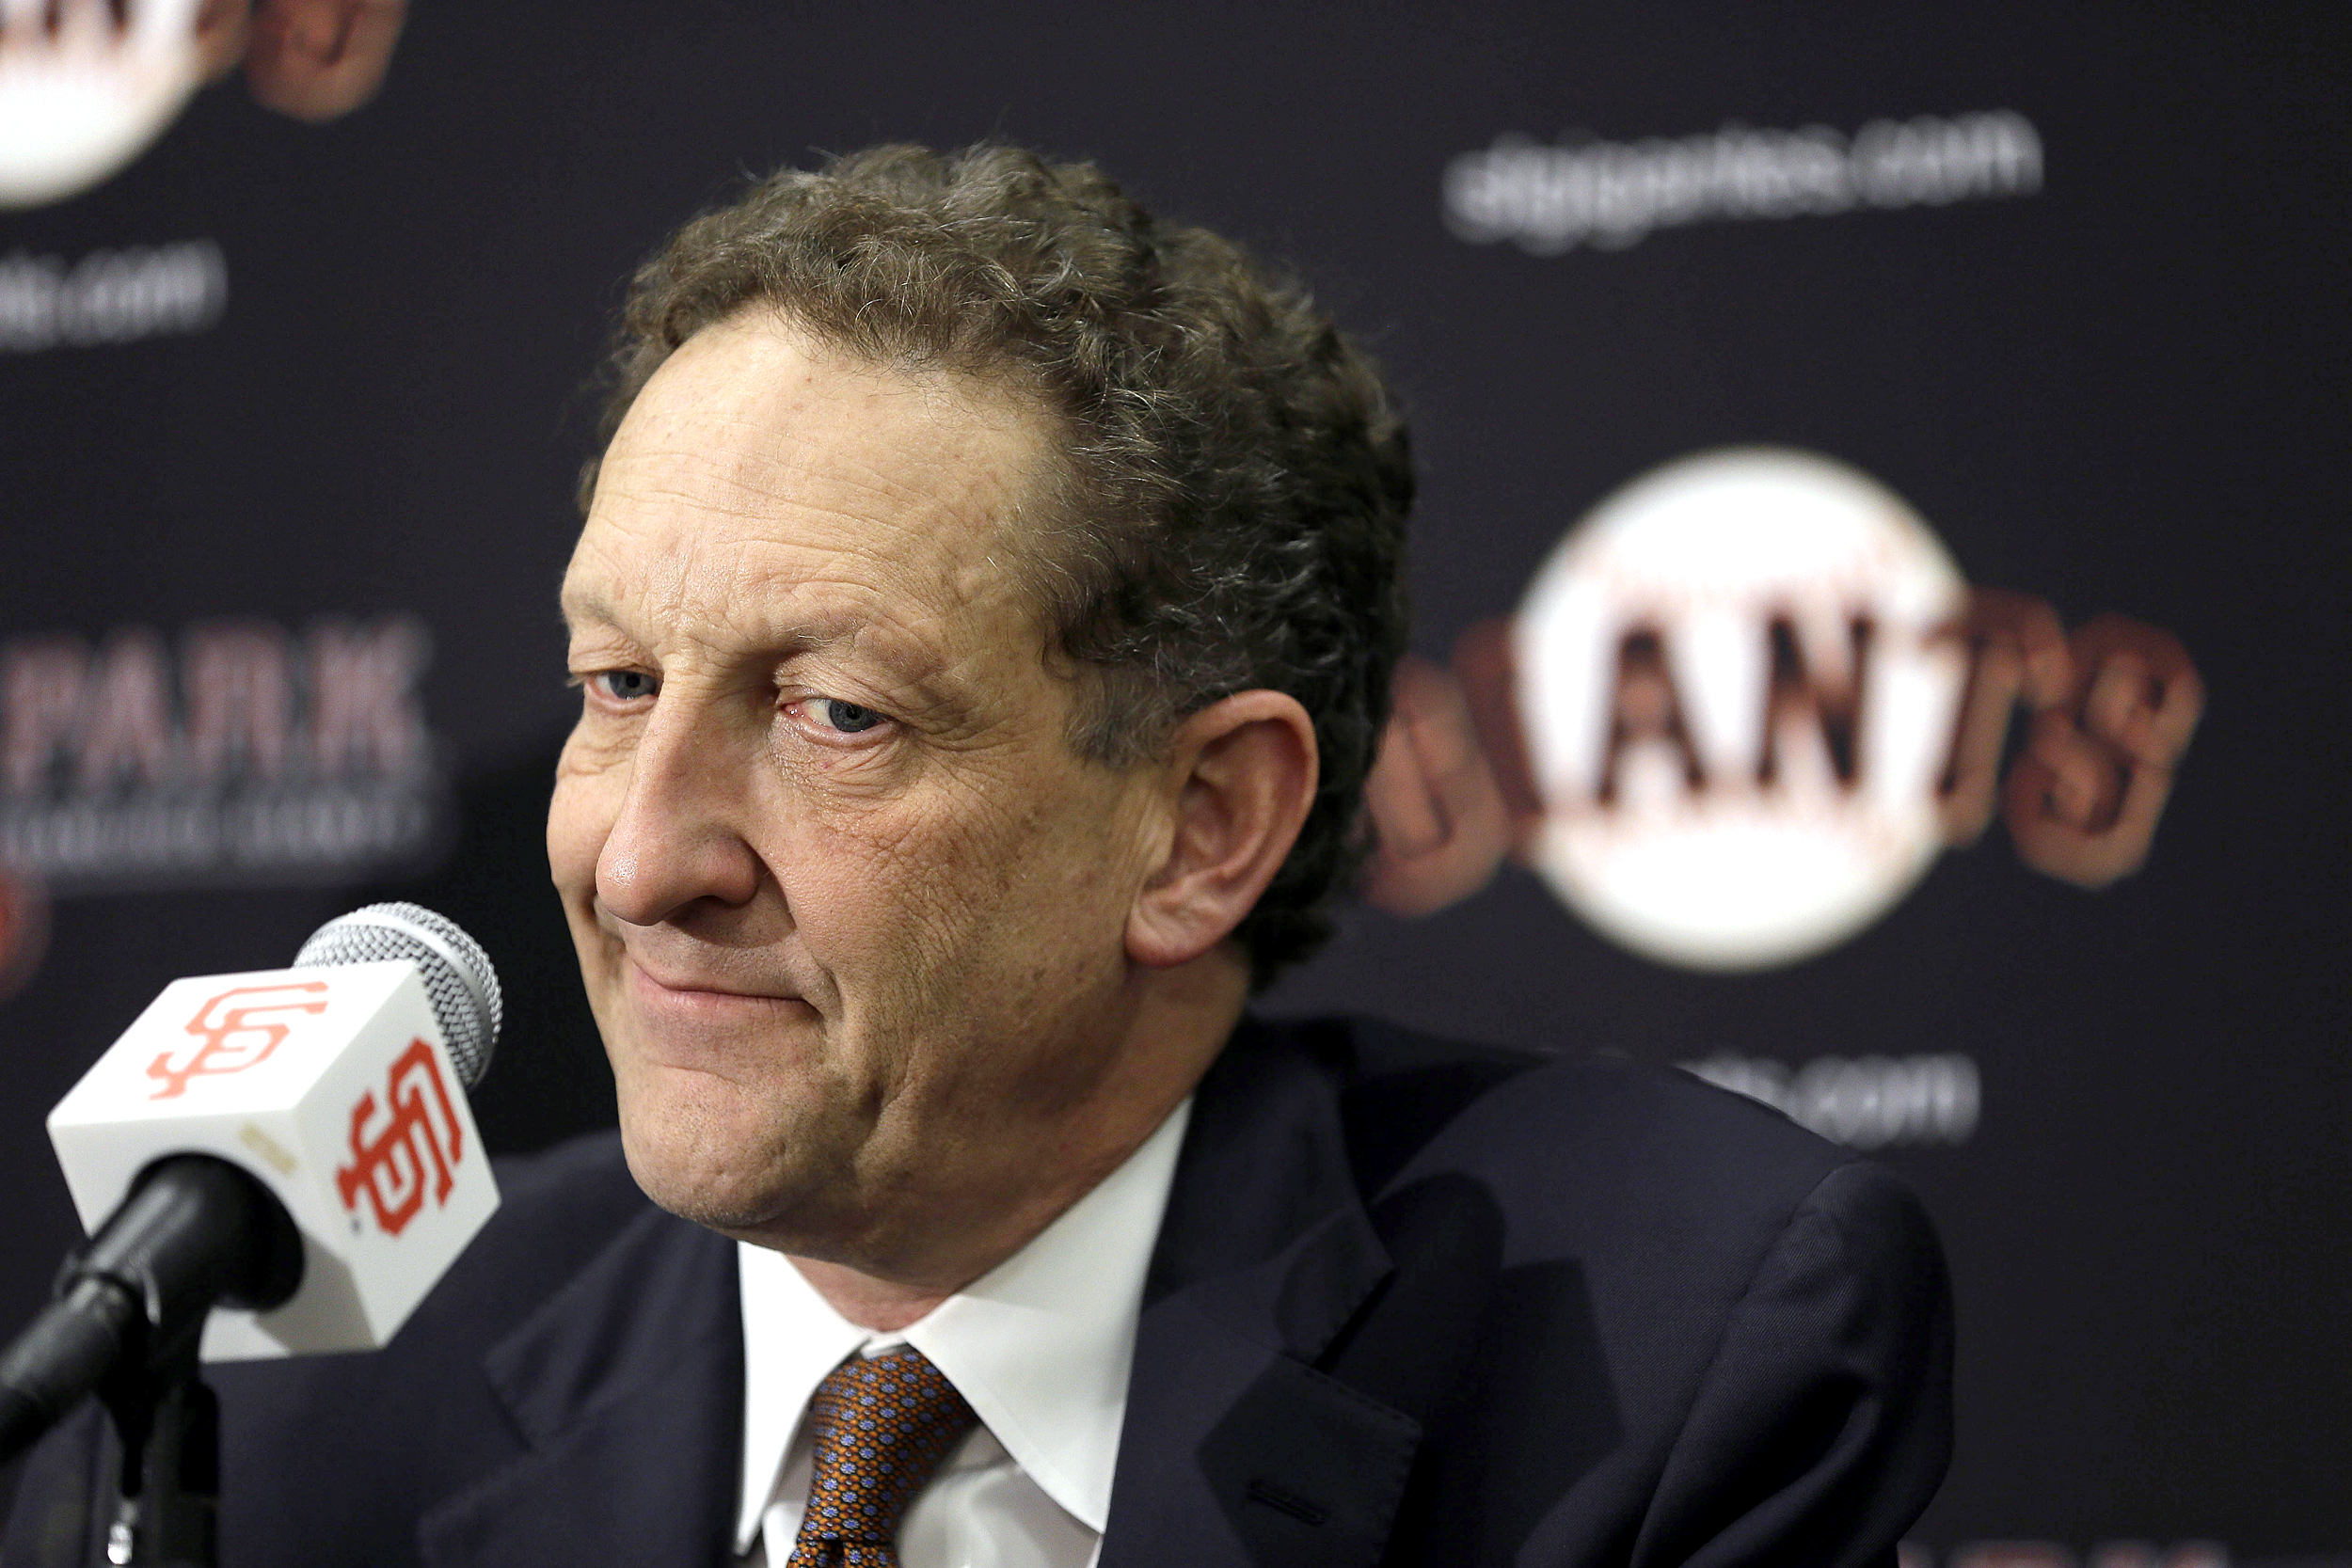 San Francisco Giants CEO will not be charged in altercation with wife